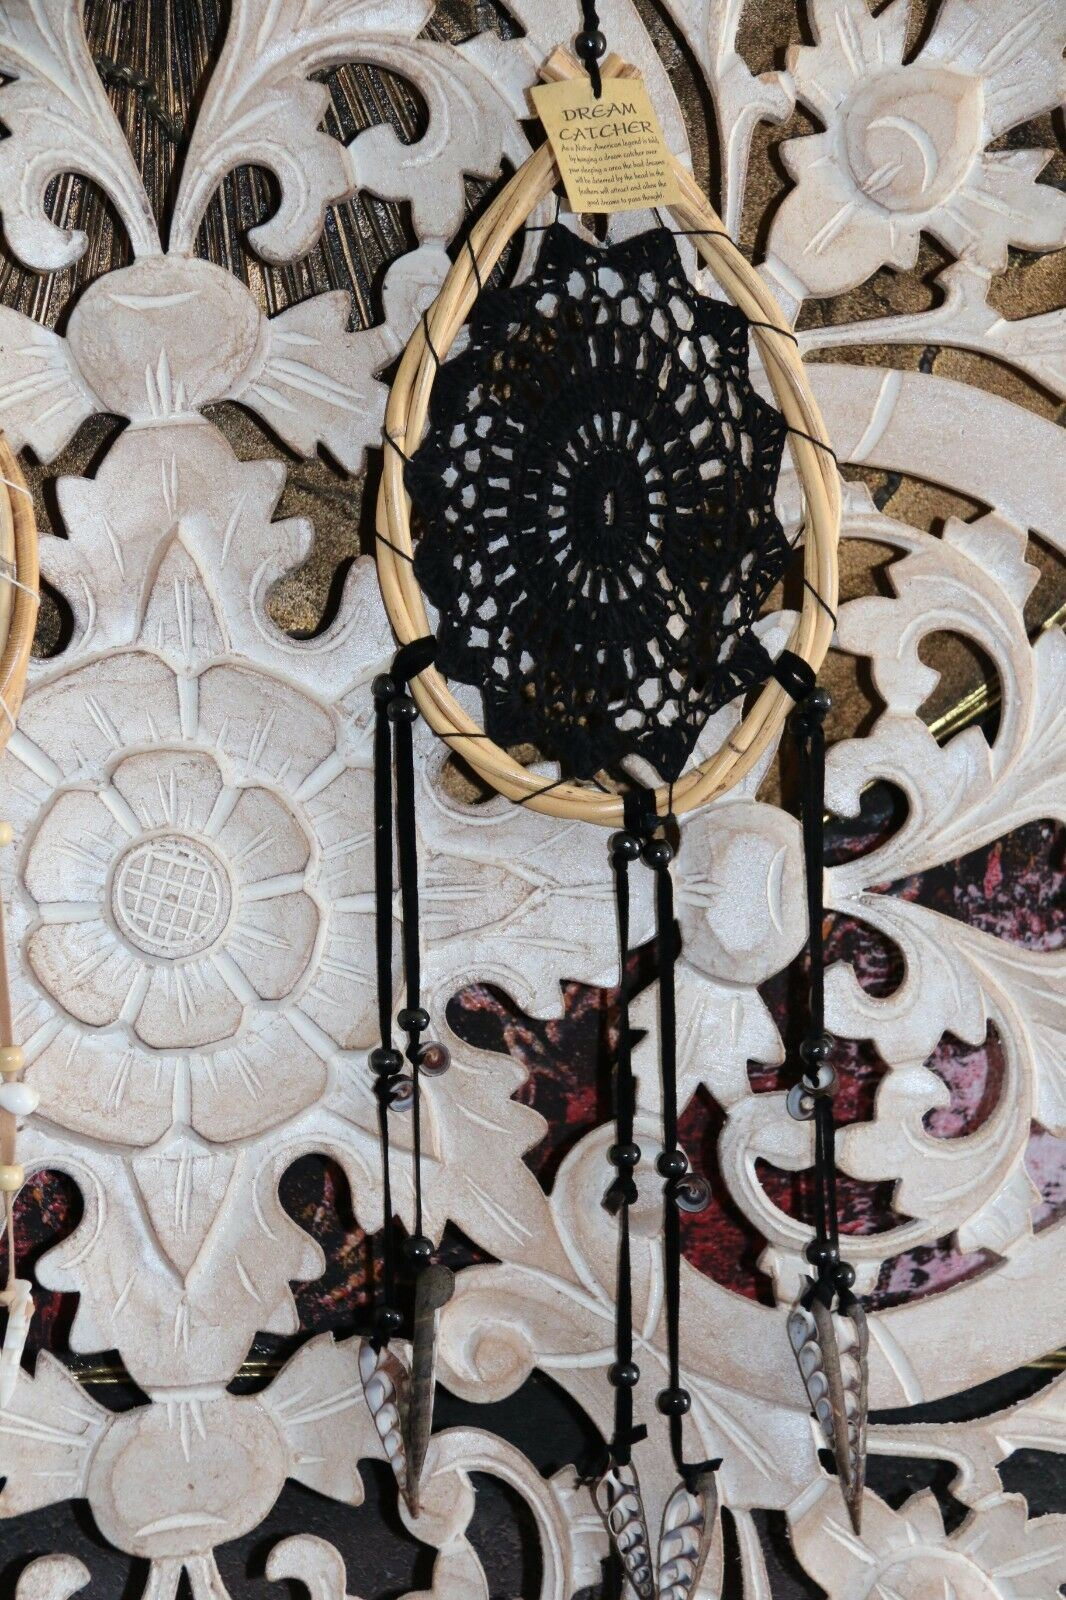 NEW Bali Dream Catcher - Crochet, Tassels, Bamboo & Shells BOHO Dream Catcher